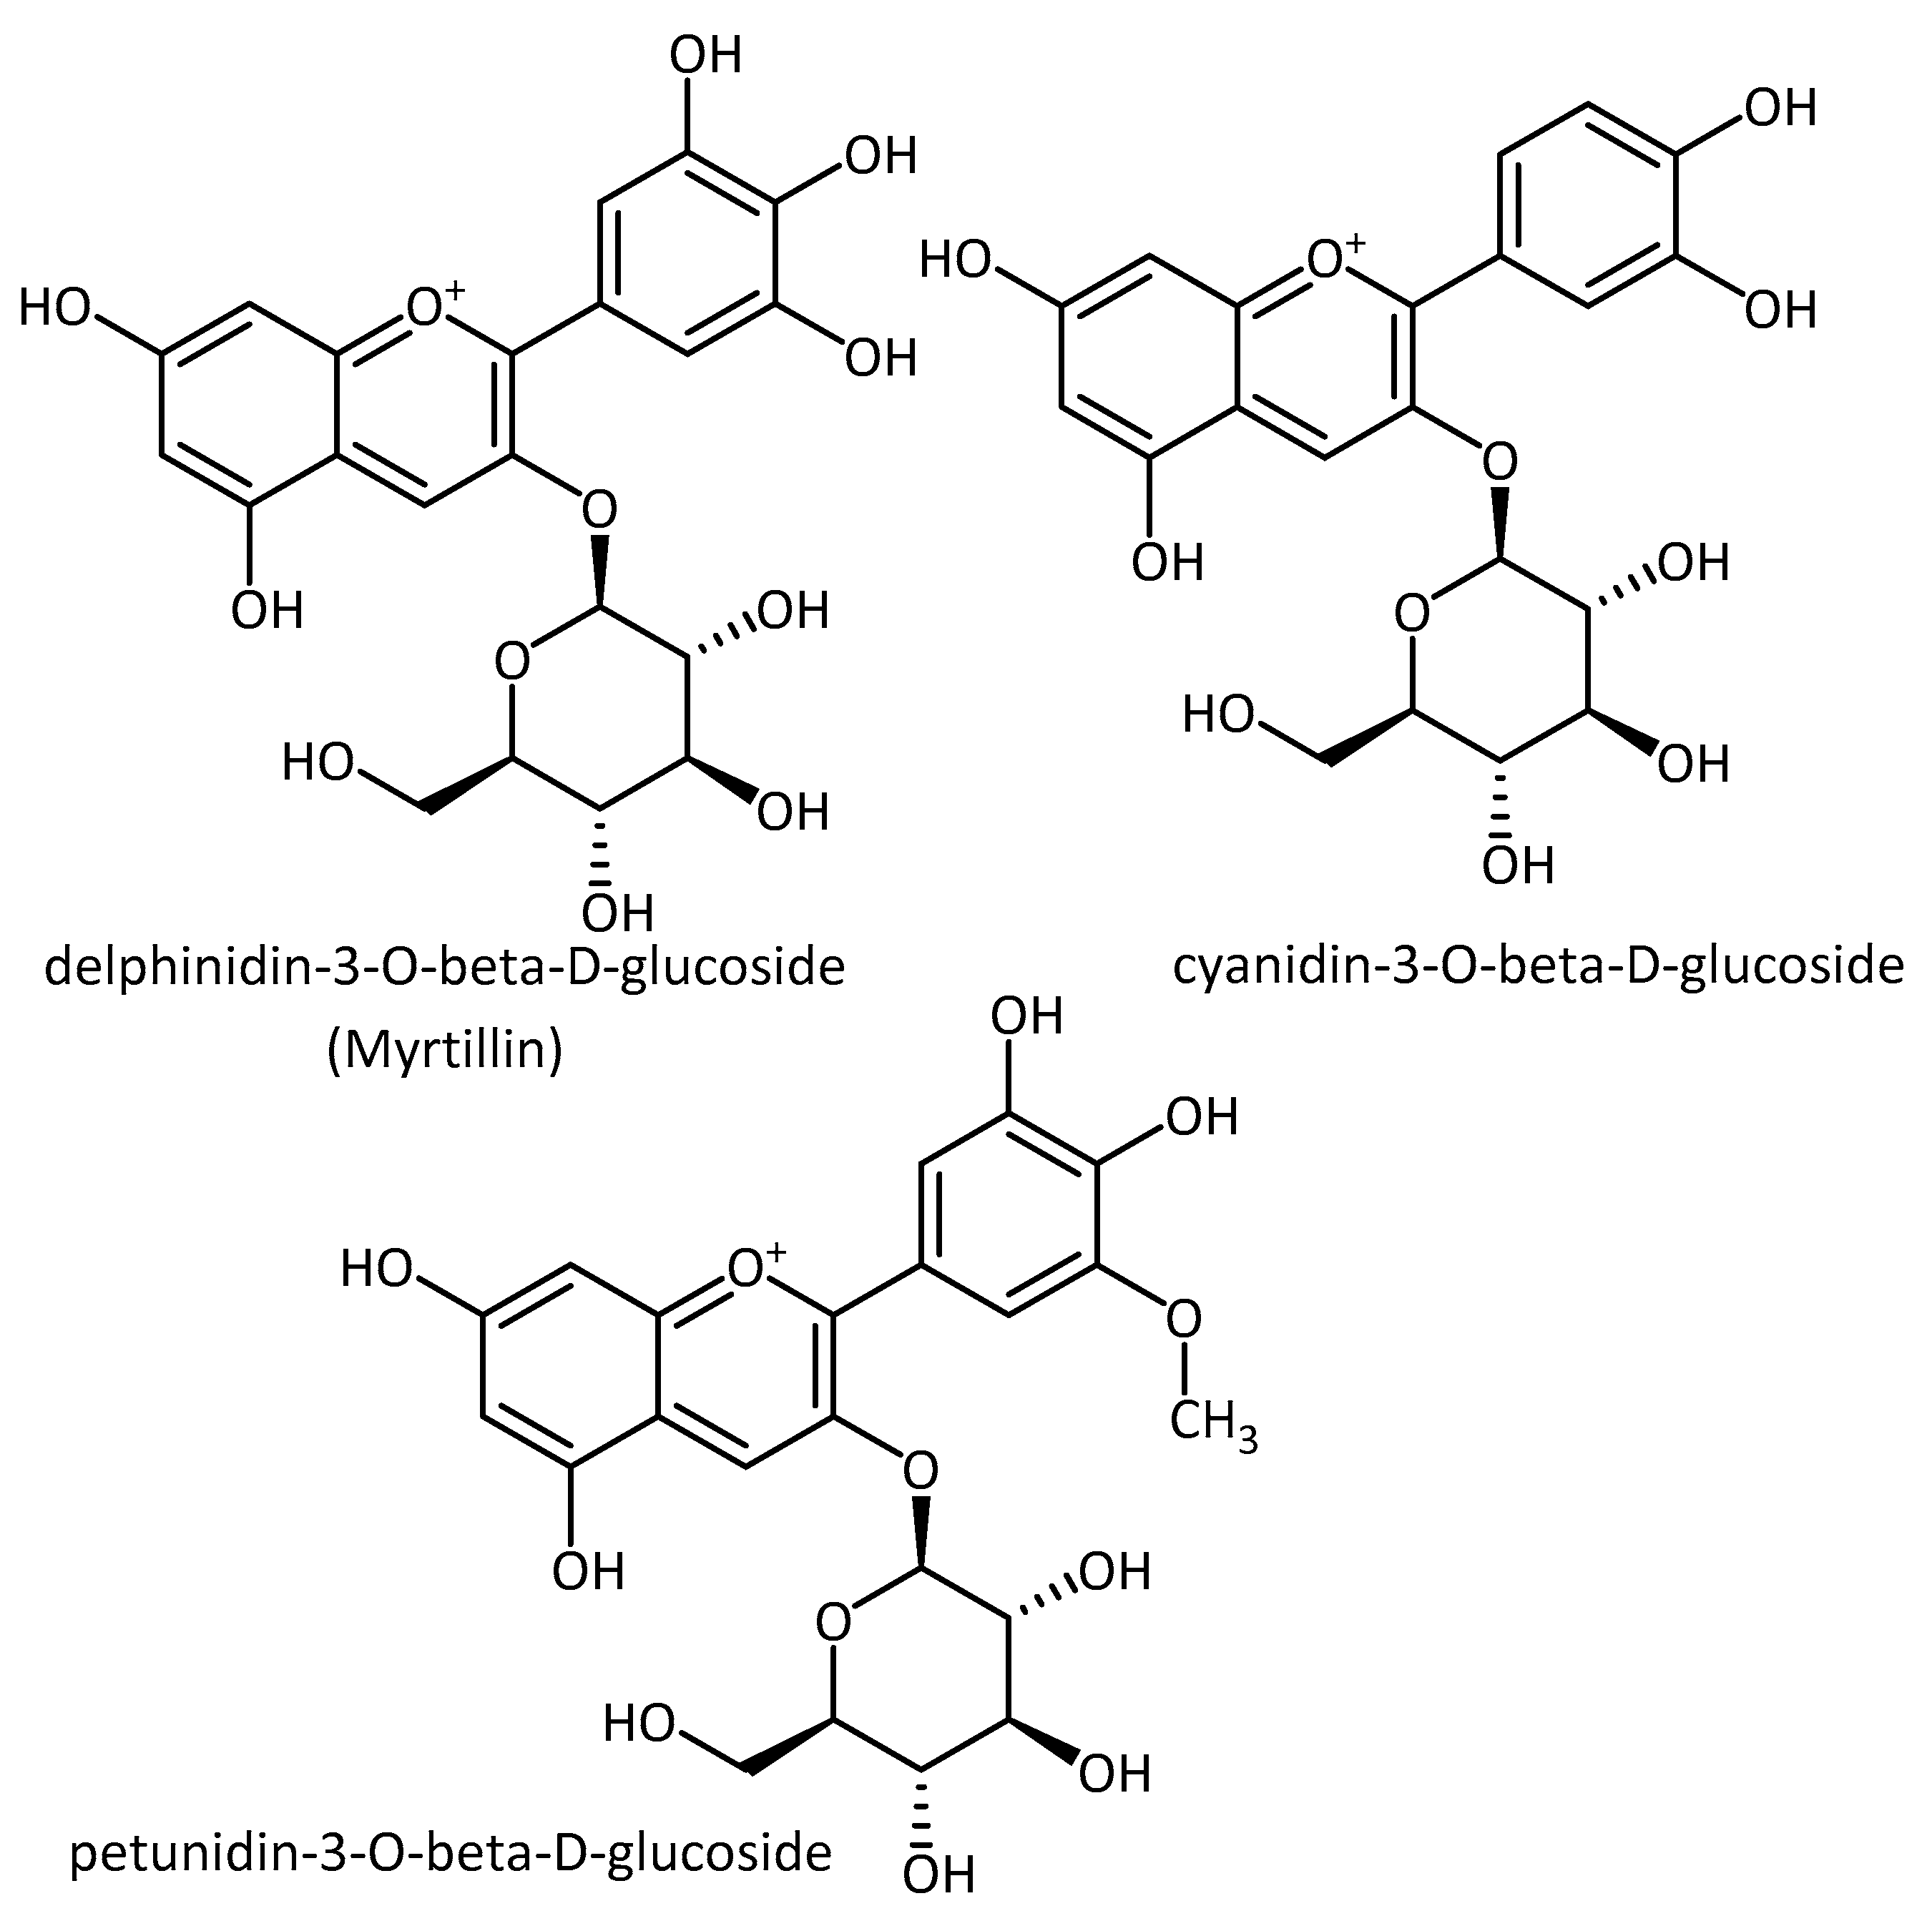 Molecules   Free Full-Text   The Potential Use of Plant Natural